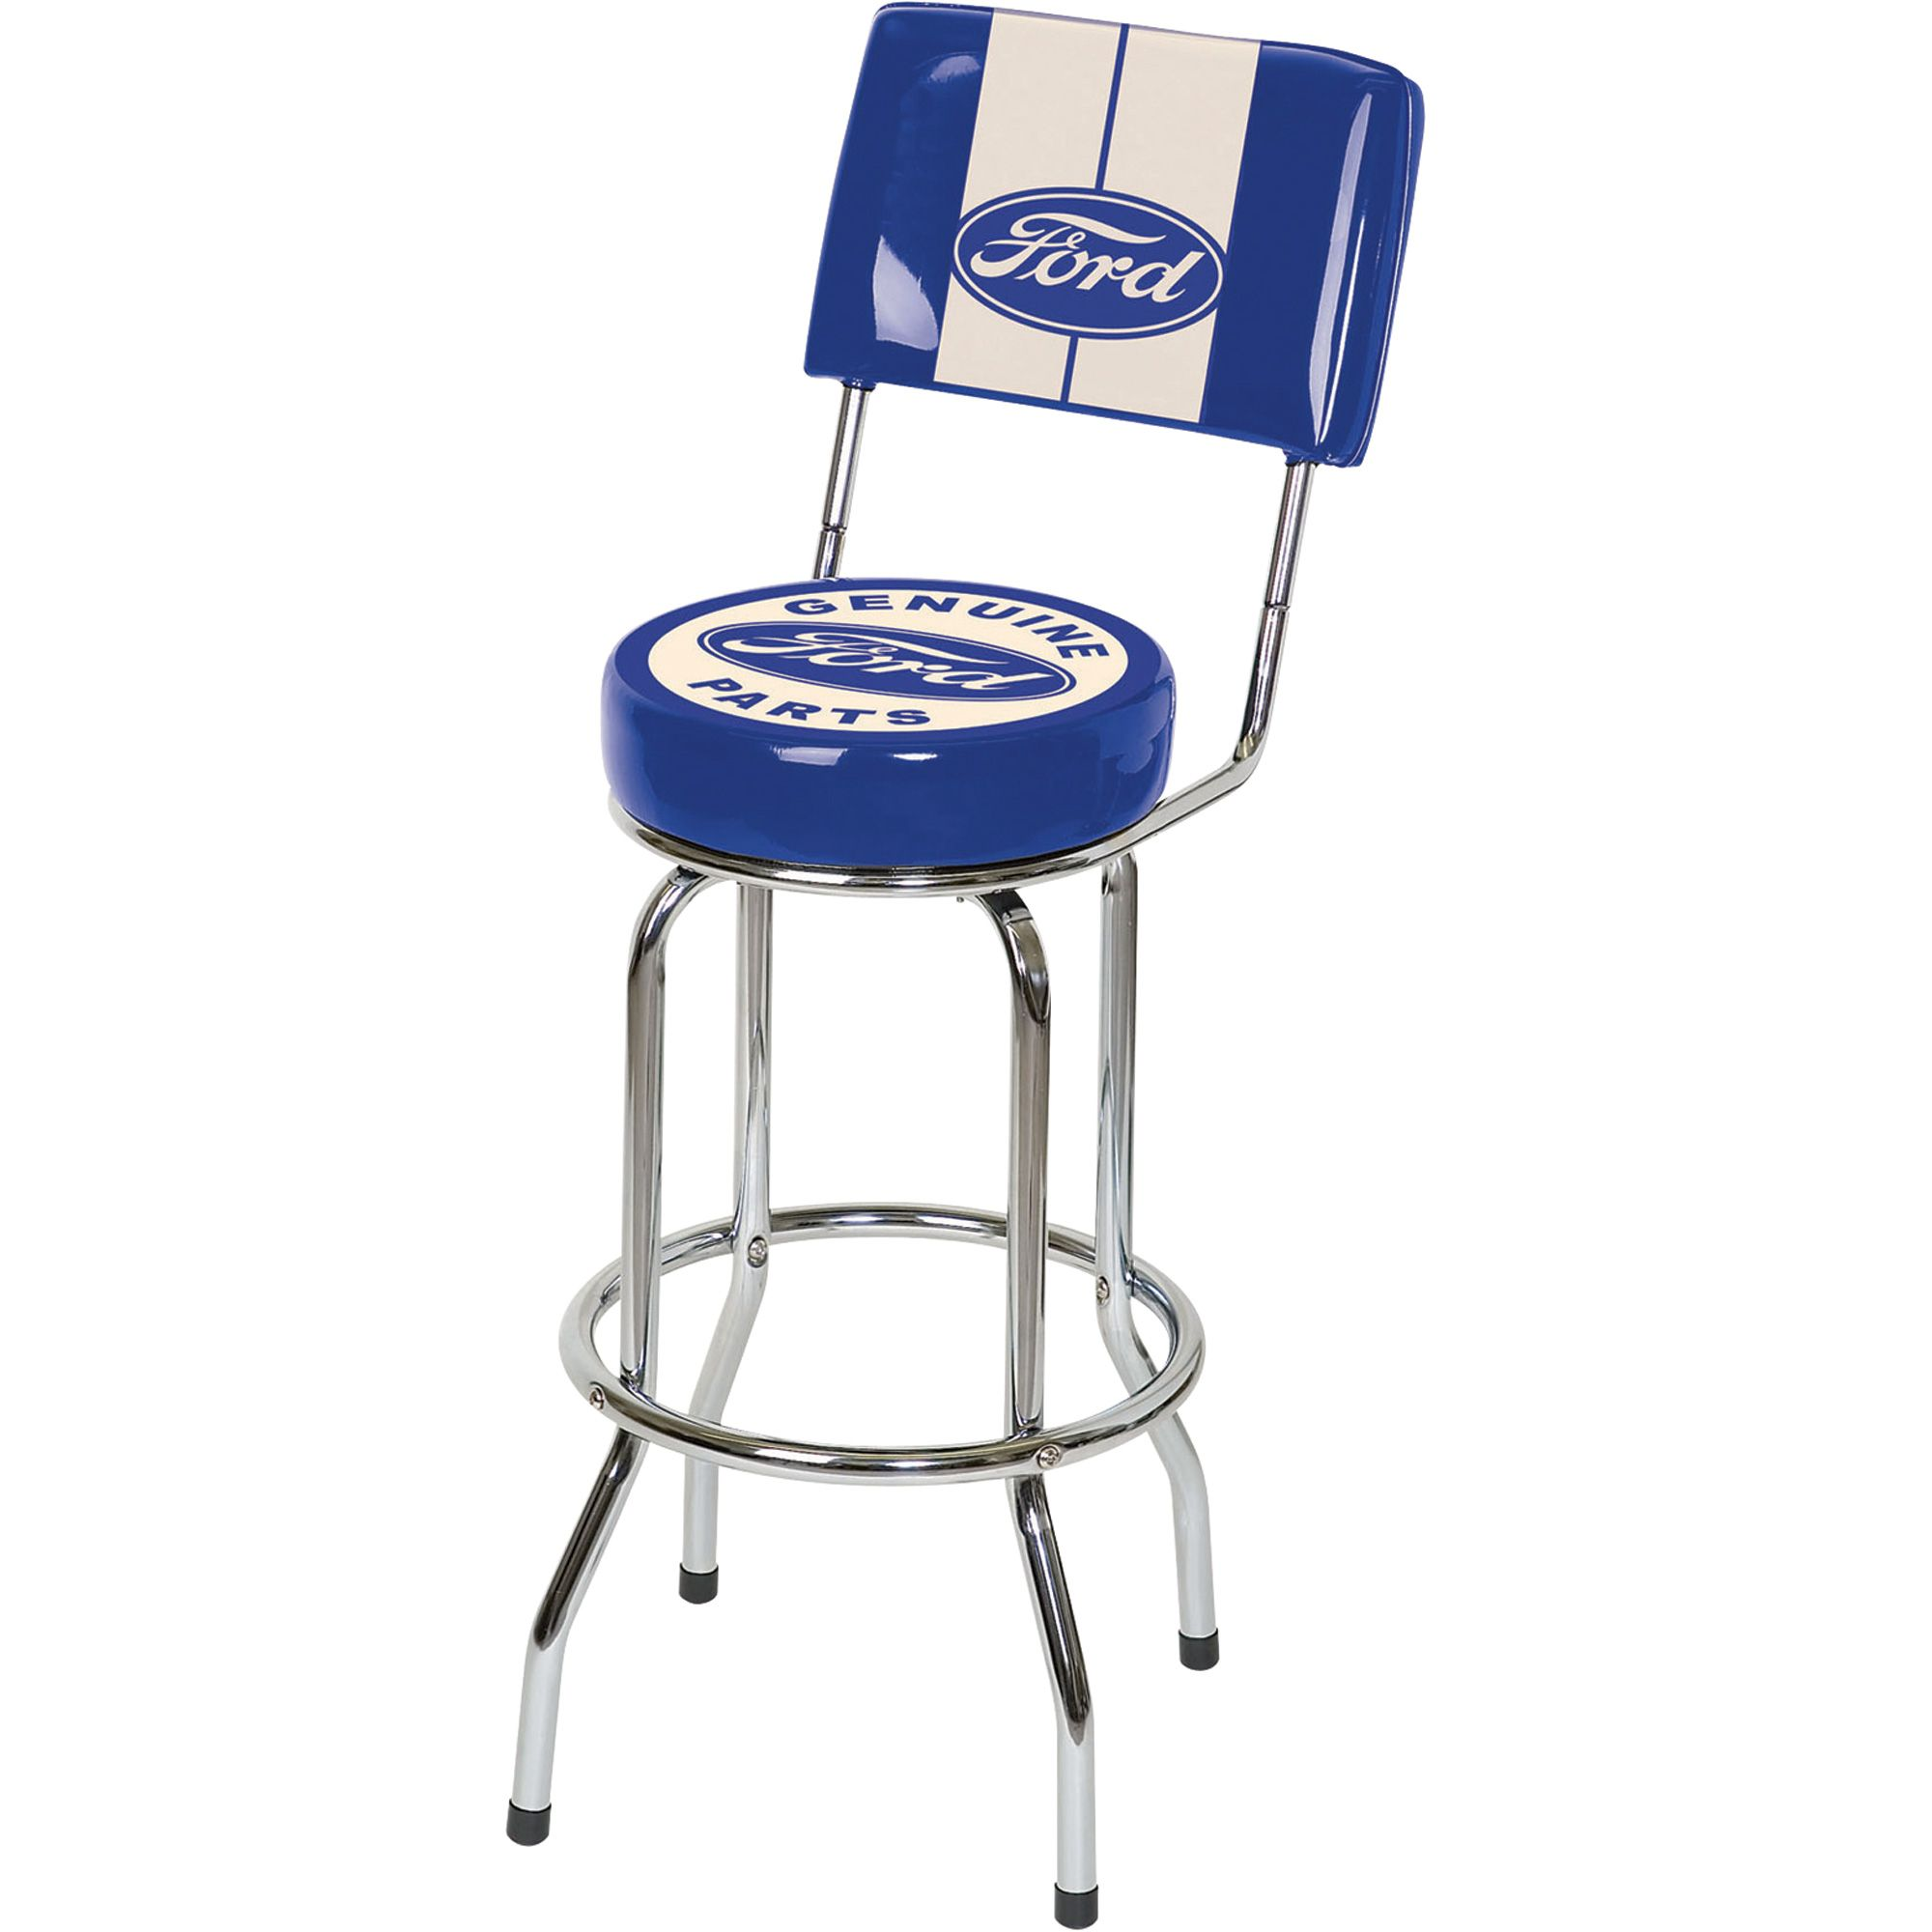 with wooden steel size porter seat custom breakfast upholstered lanacionaltapas chairs uk design signature counter made wood stool ashley swivel home logo metal black and white of backs by stools depot padded perth full folding bar cream garage moriann frame barstool